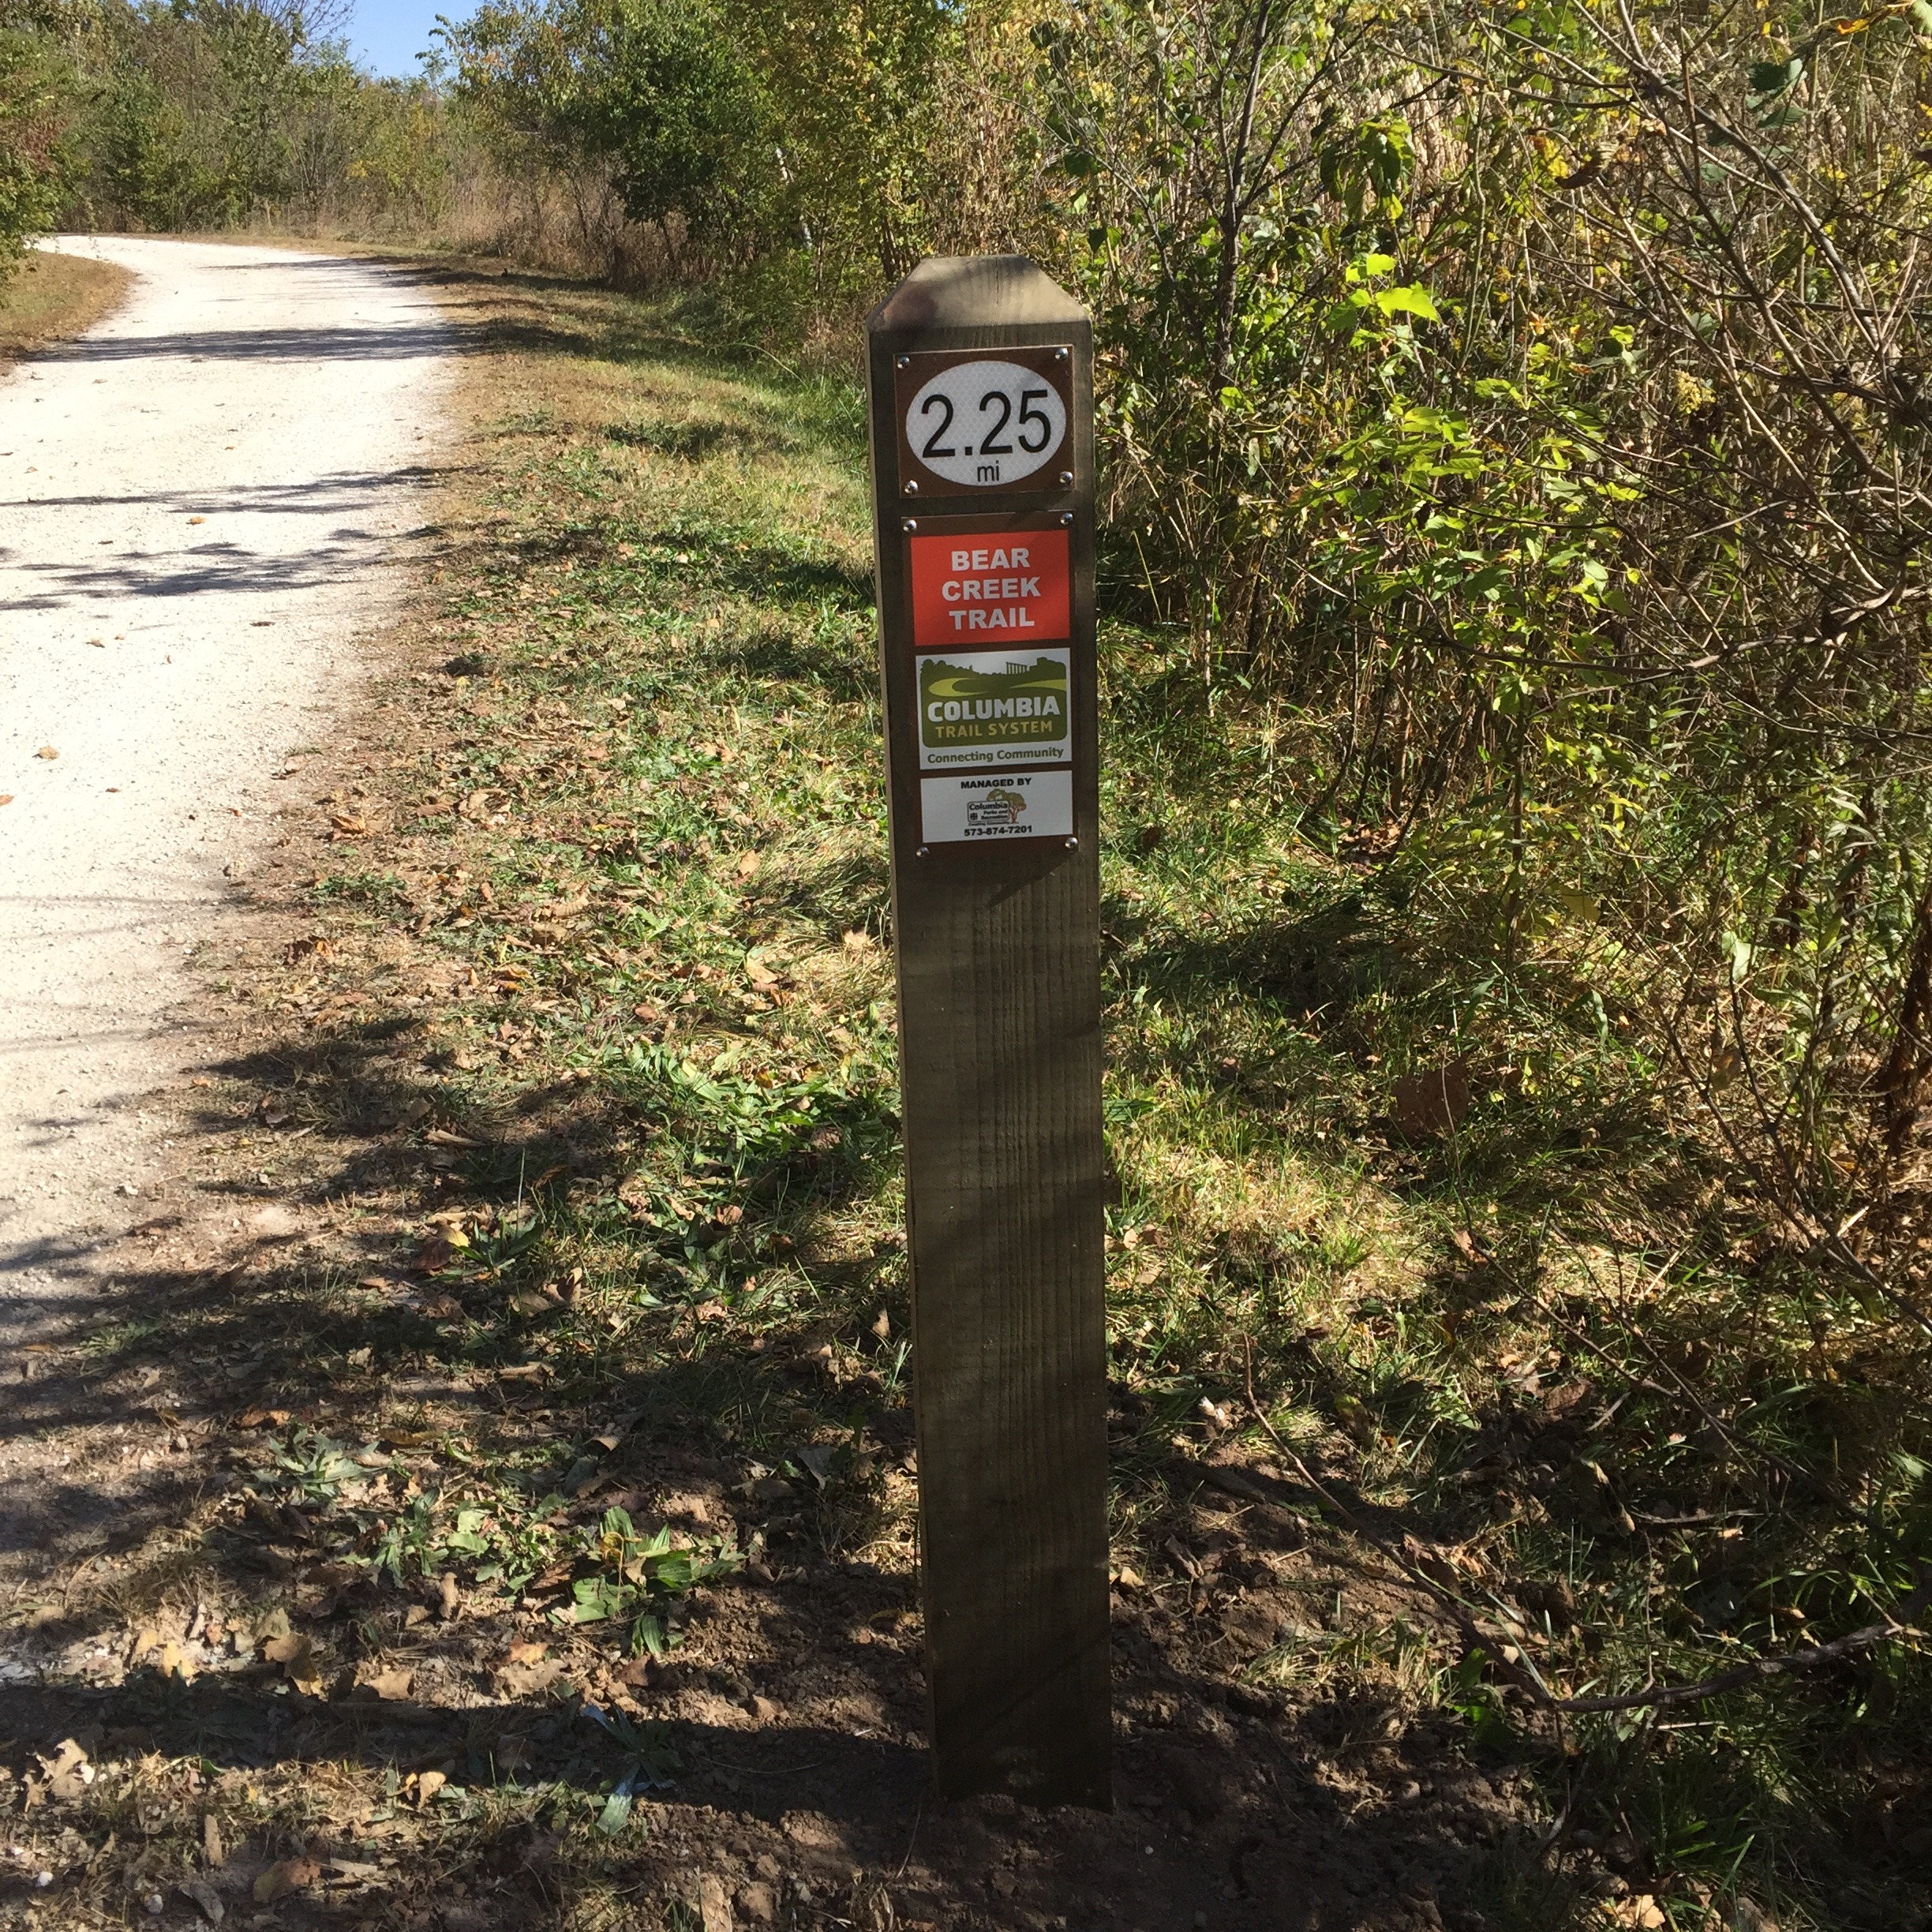 Columbia updates trail wayfinding maps trail guides for extensive columbia updates trail wayfinding maps trail guides for extensive local trails system missouri bicycle and pedestrian federation publicscrutiny Image collections